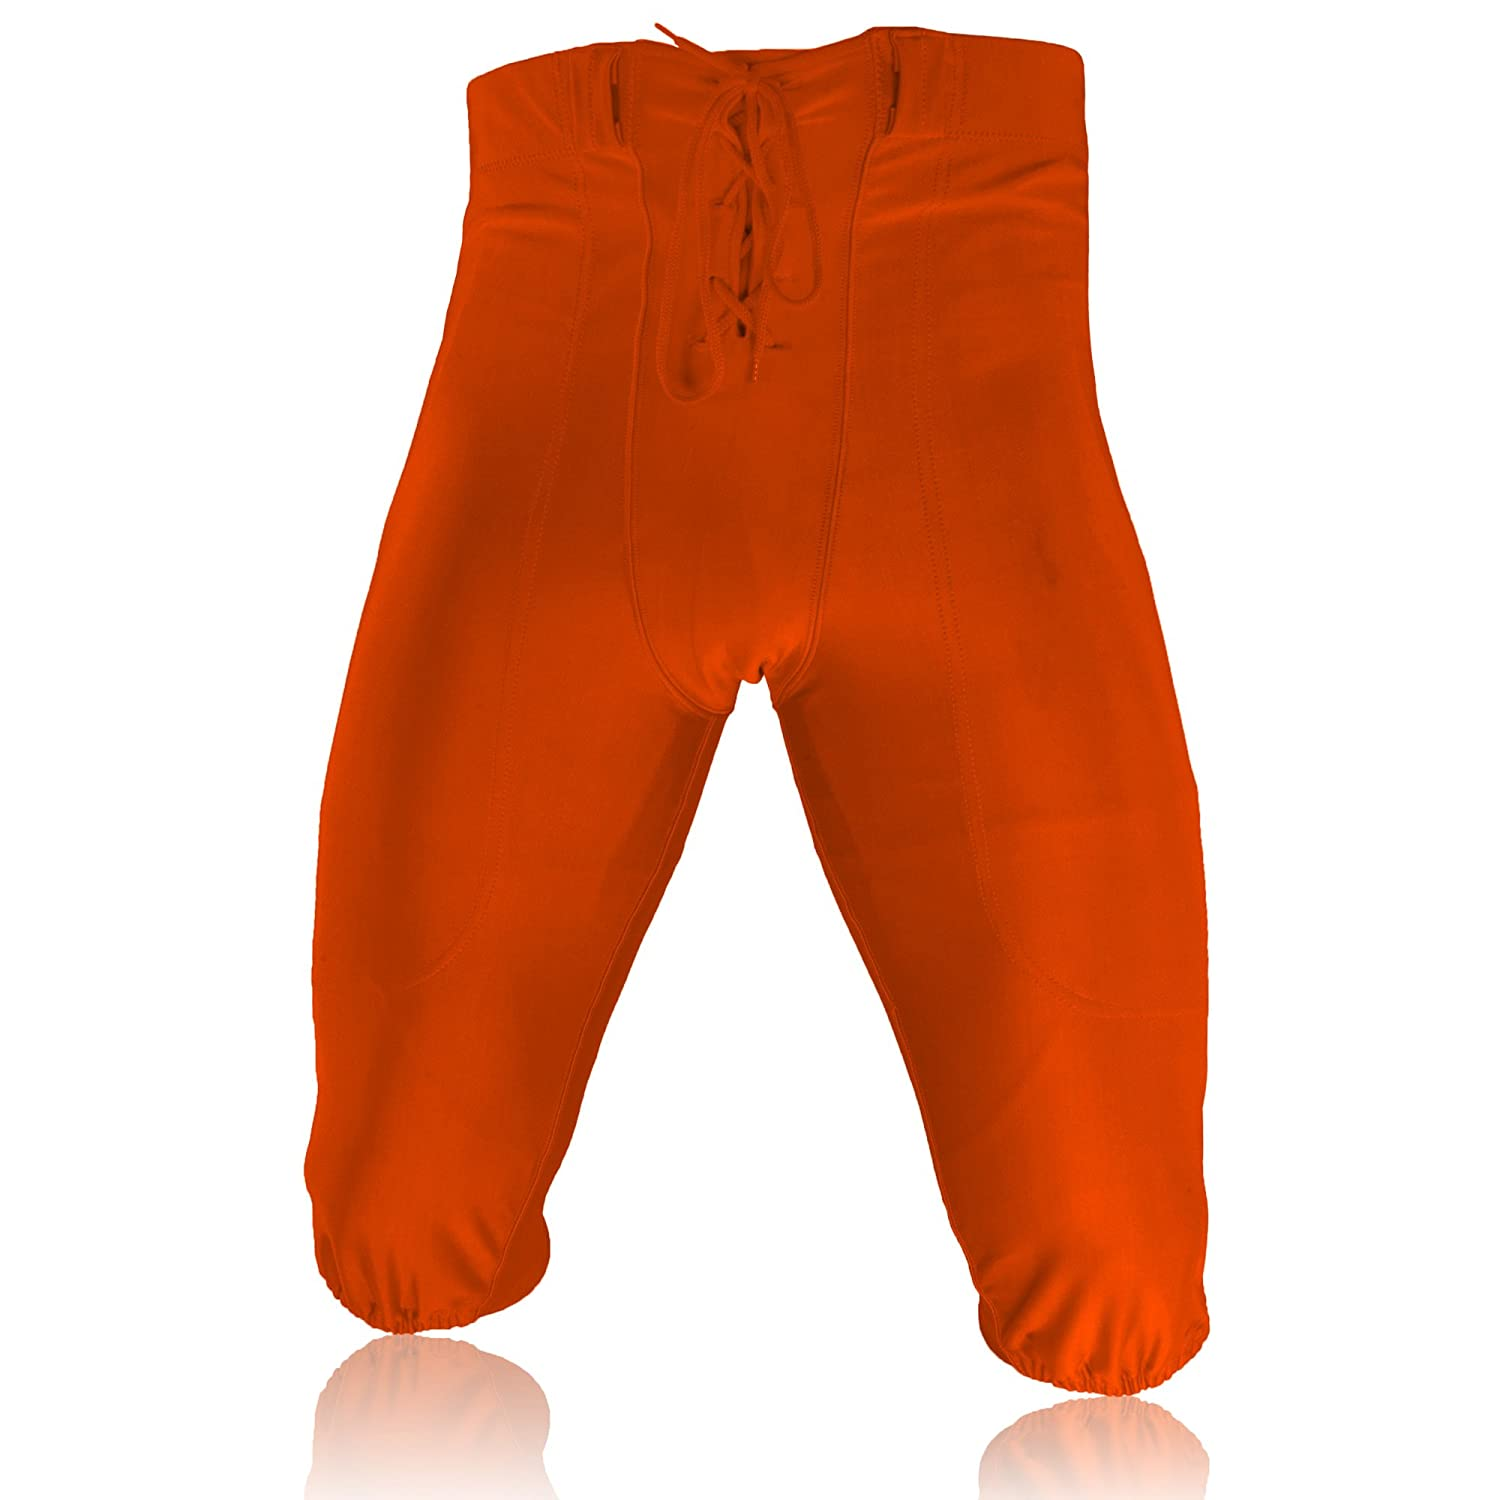 Full Force Profi Footballhose, Stretch Lycra Gamepant, Orange